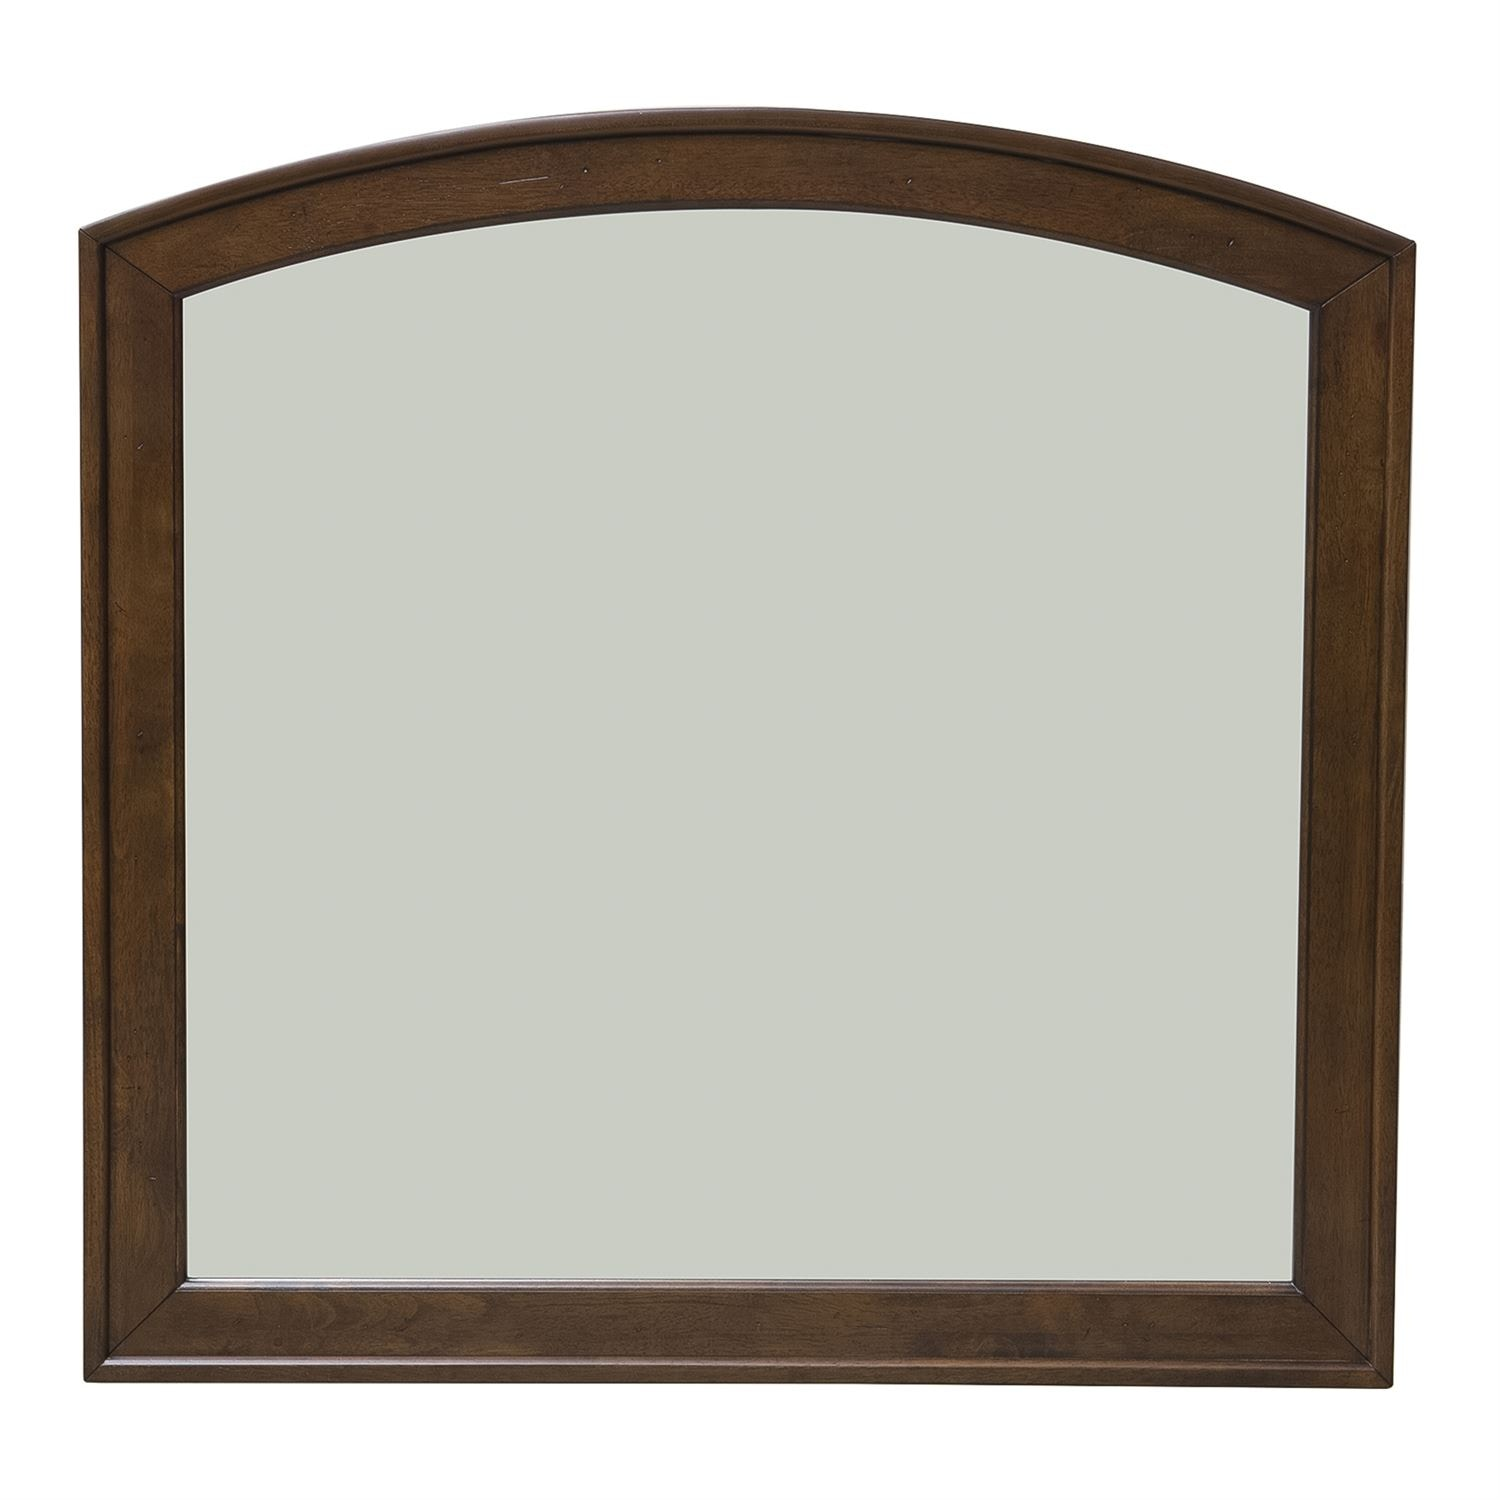 Liberty Furniture Accessories Arched Mirror 705 BR51 At D Noblin Furniture